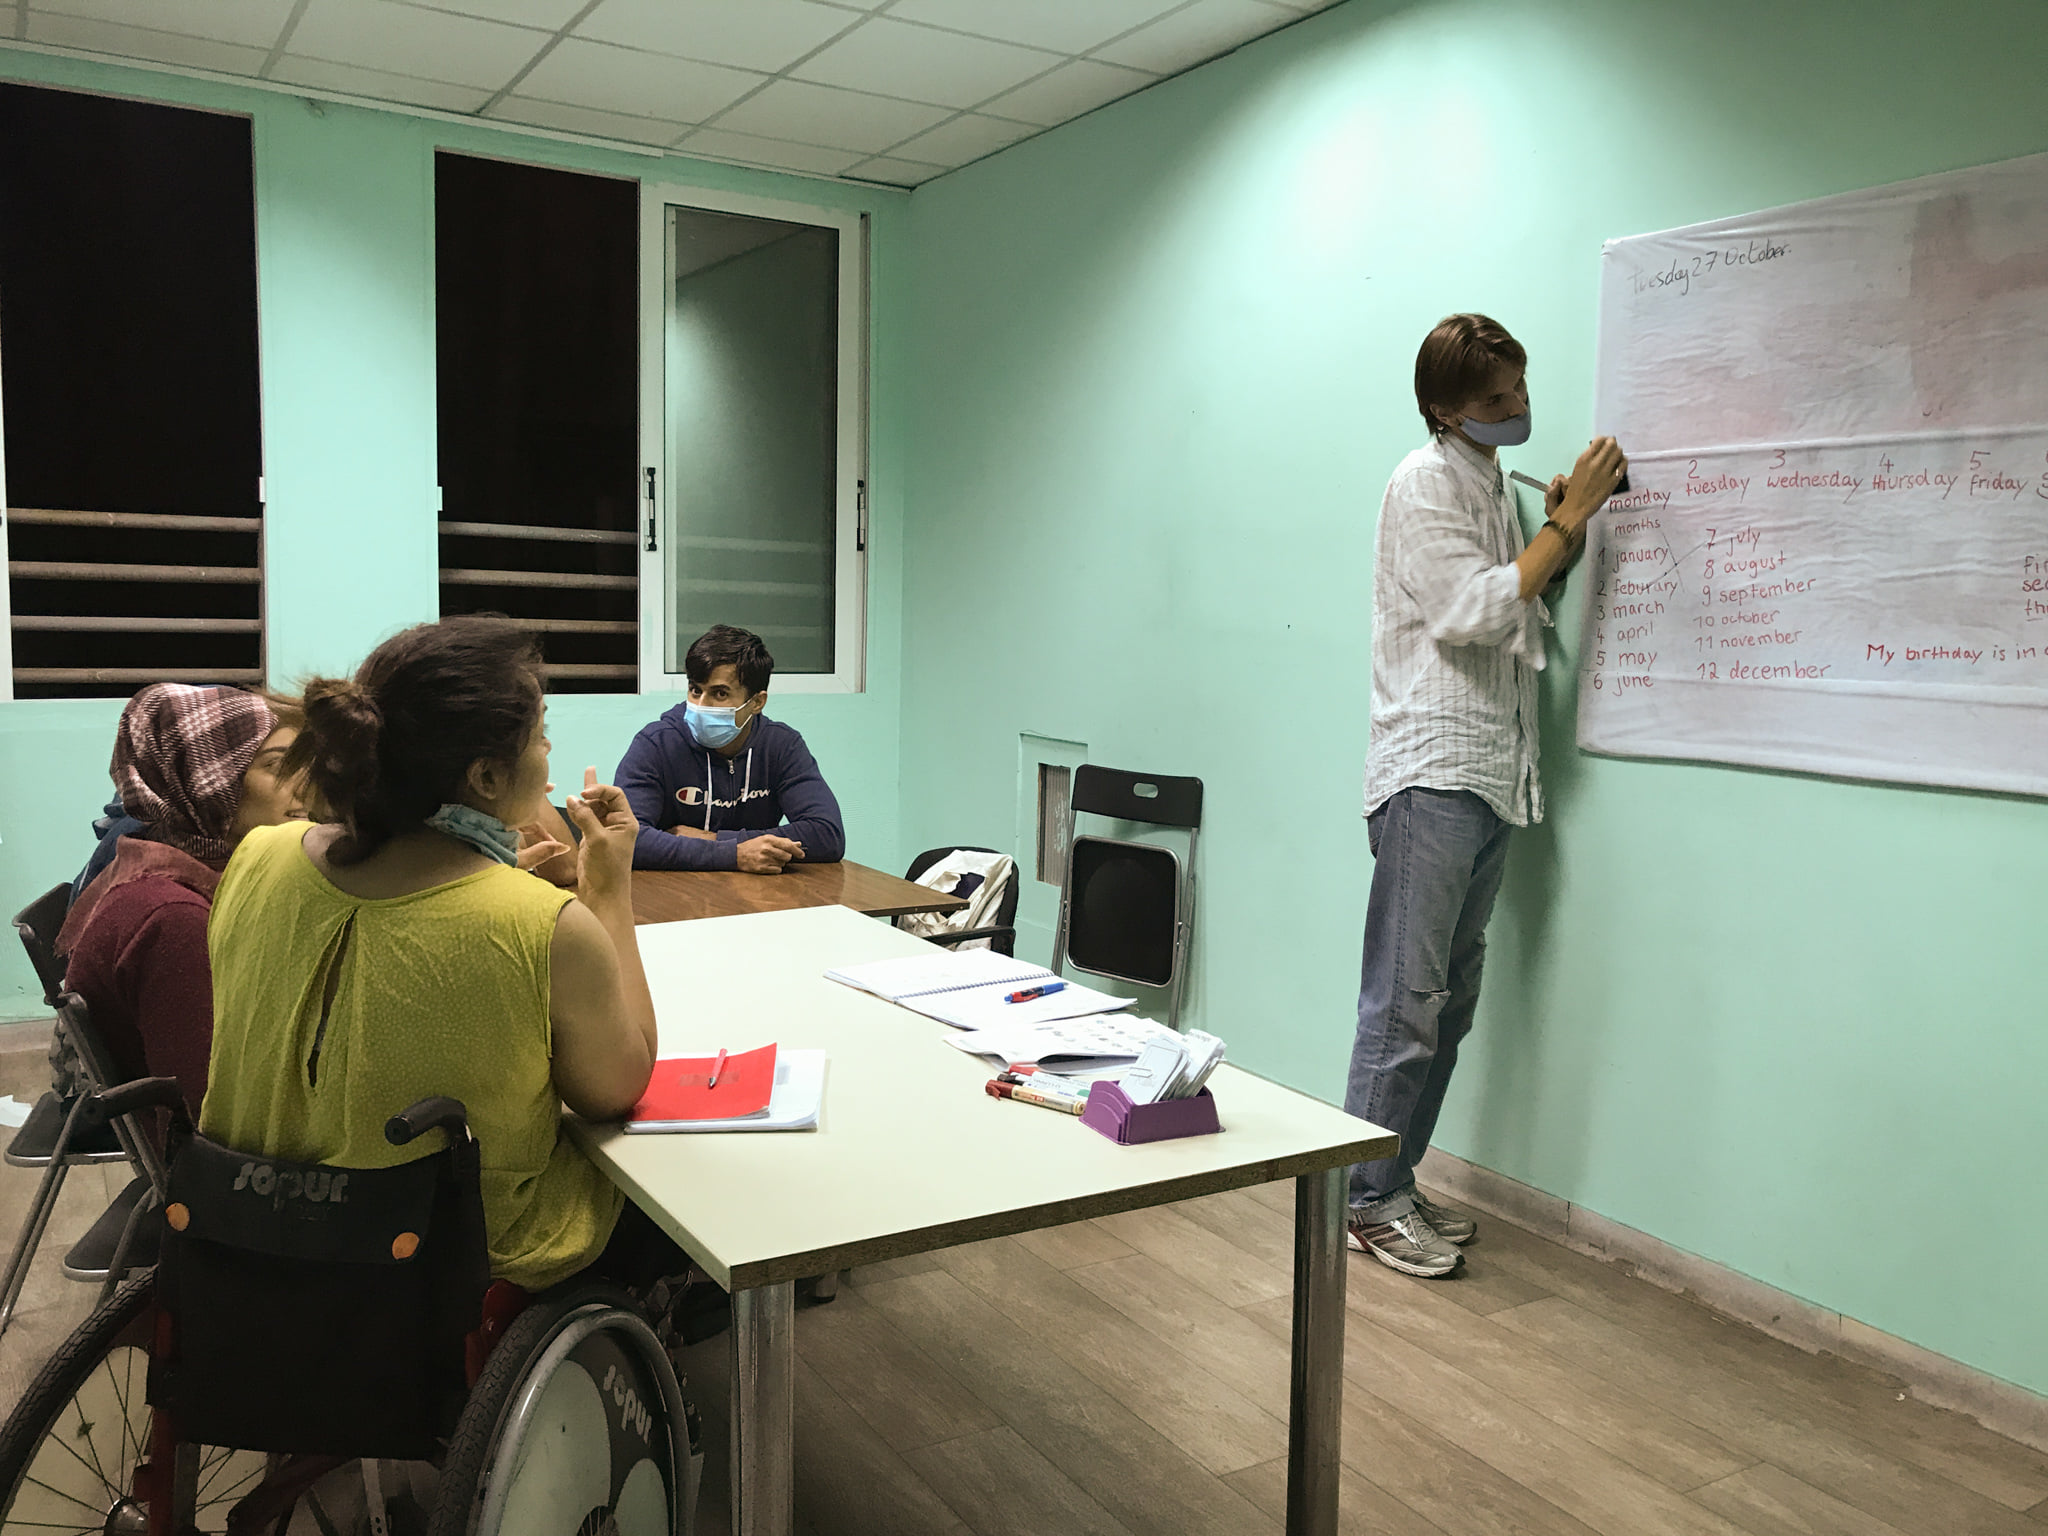 Huxley, ESC volunteer: a very enriching and educational time with refugees in the Welcommon Hostel